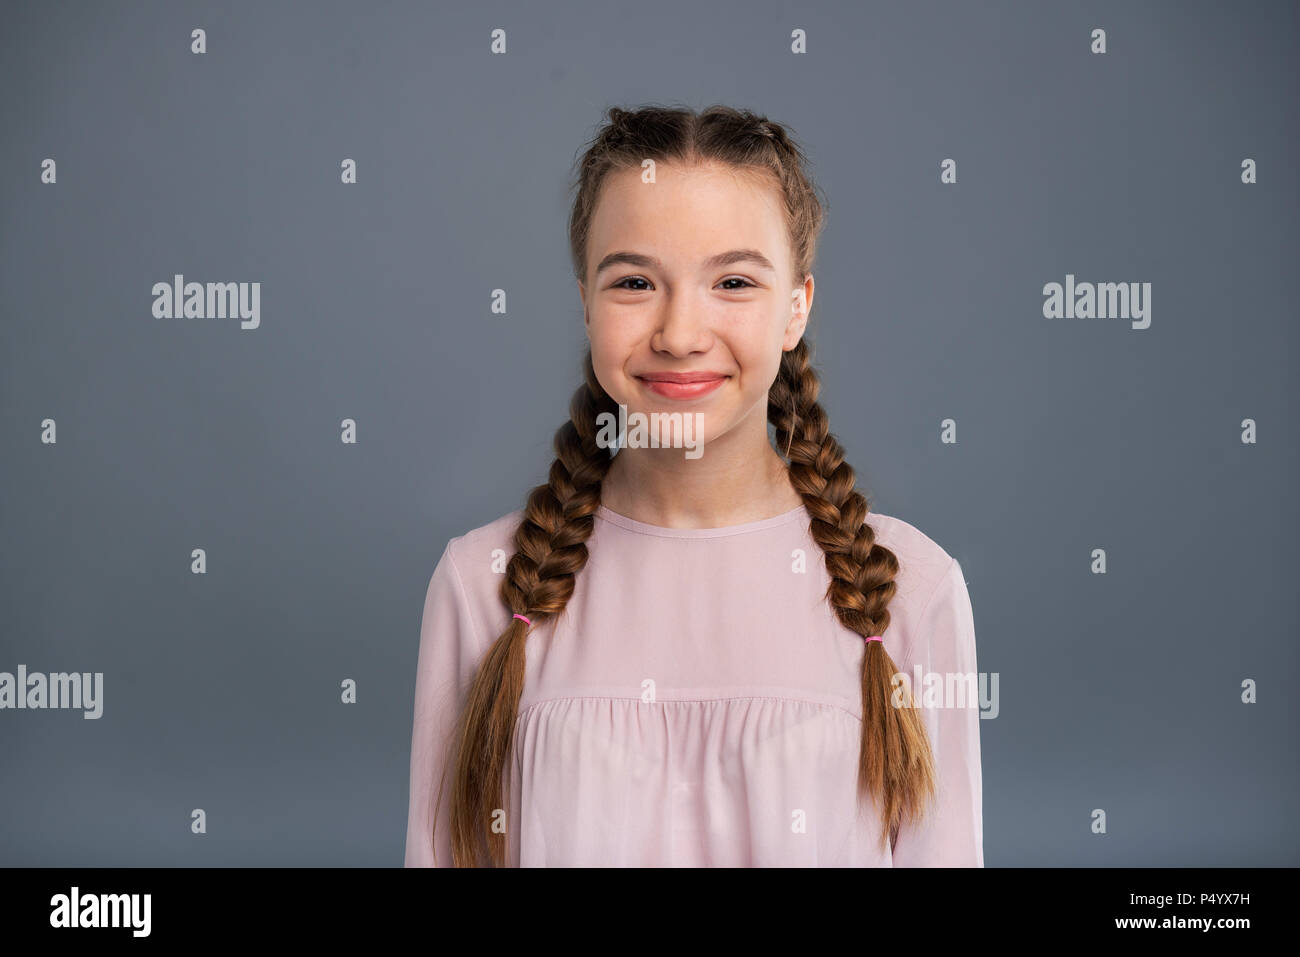 Portrait of a cute teenage girl with two braids - Stock Image